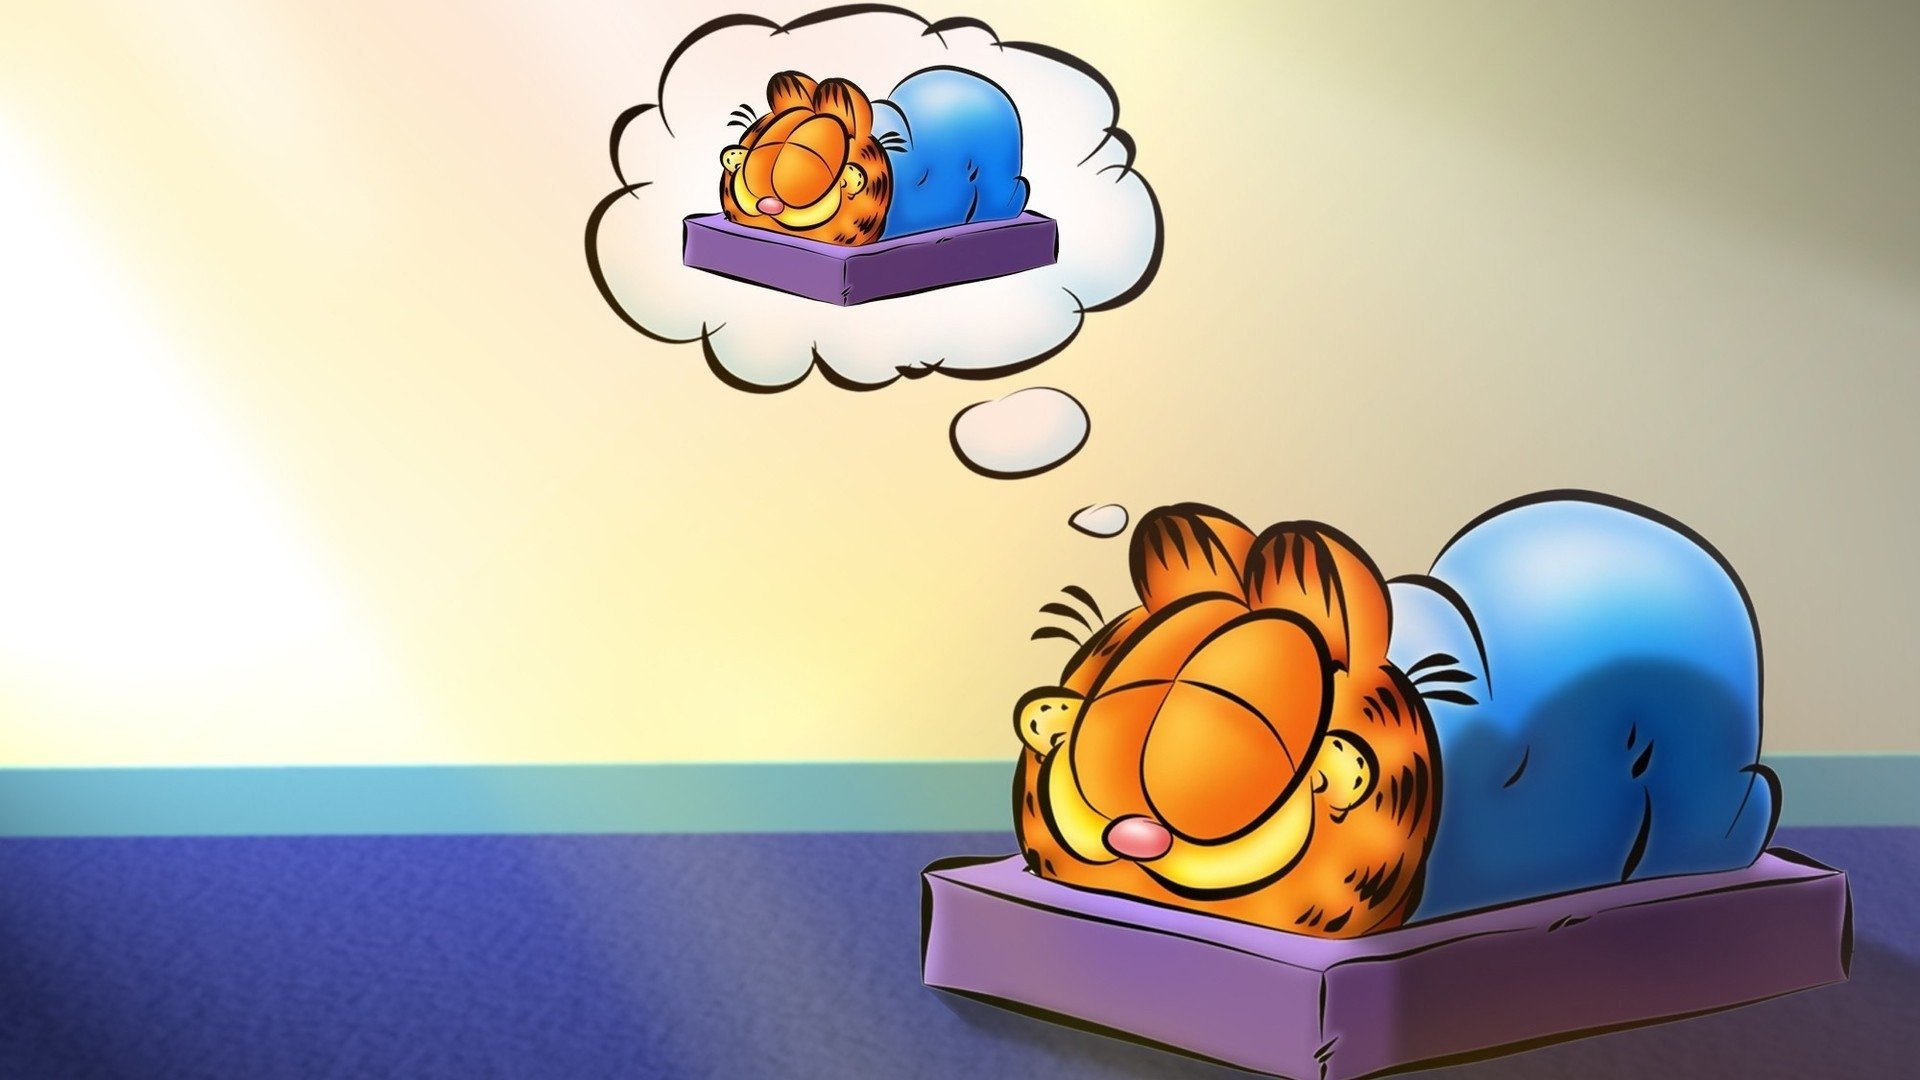 18 Garfield Hd Wallpapers Background Images Wallpaper Abyss